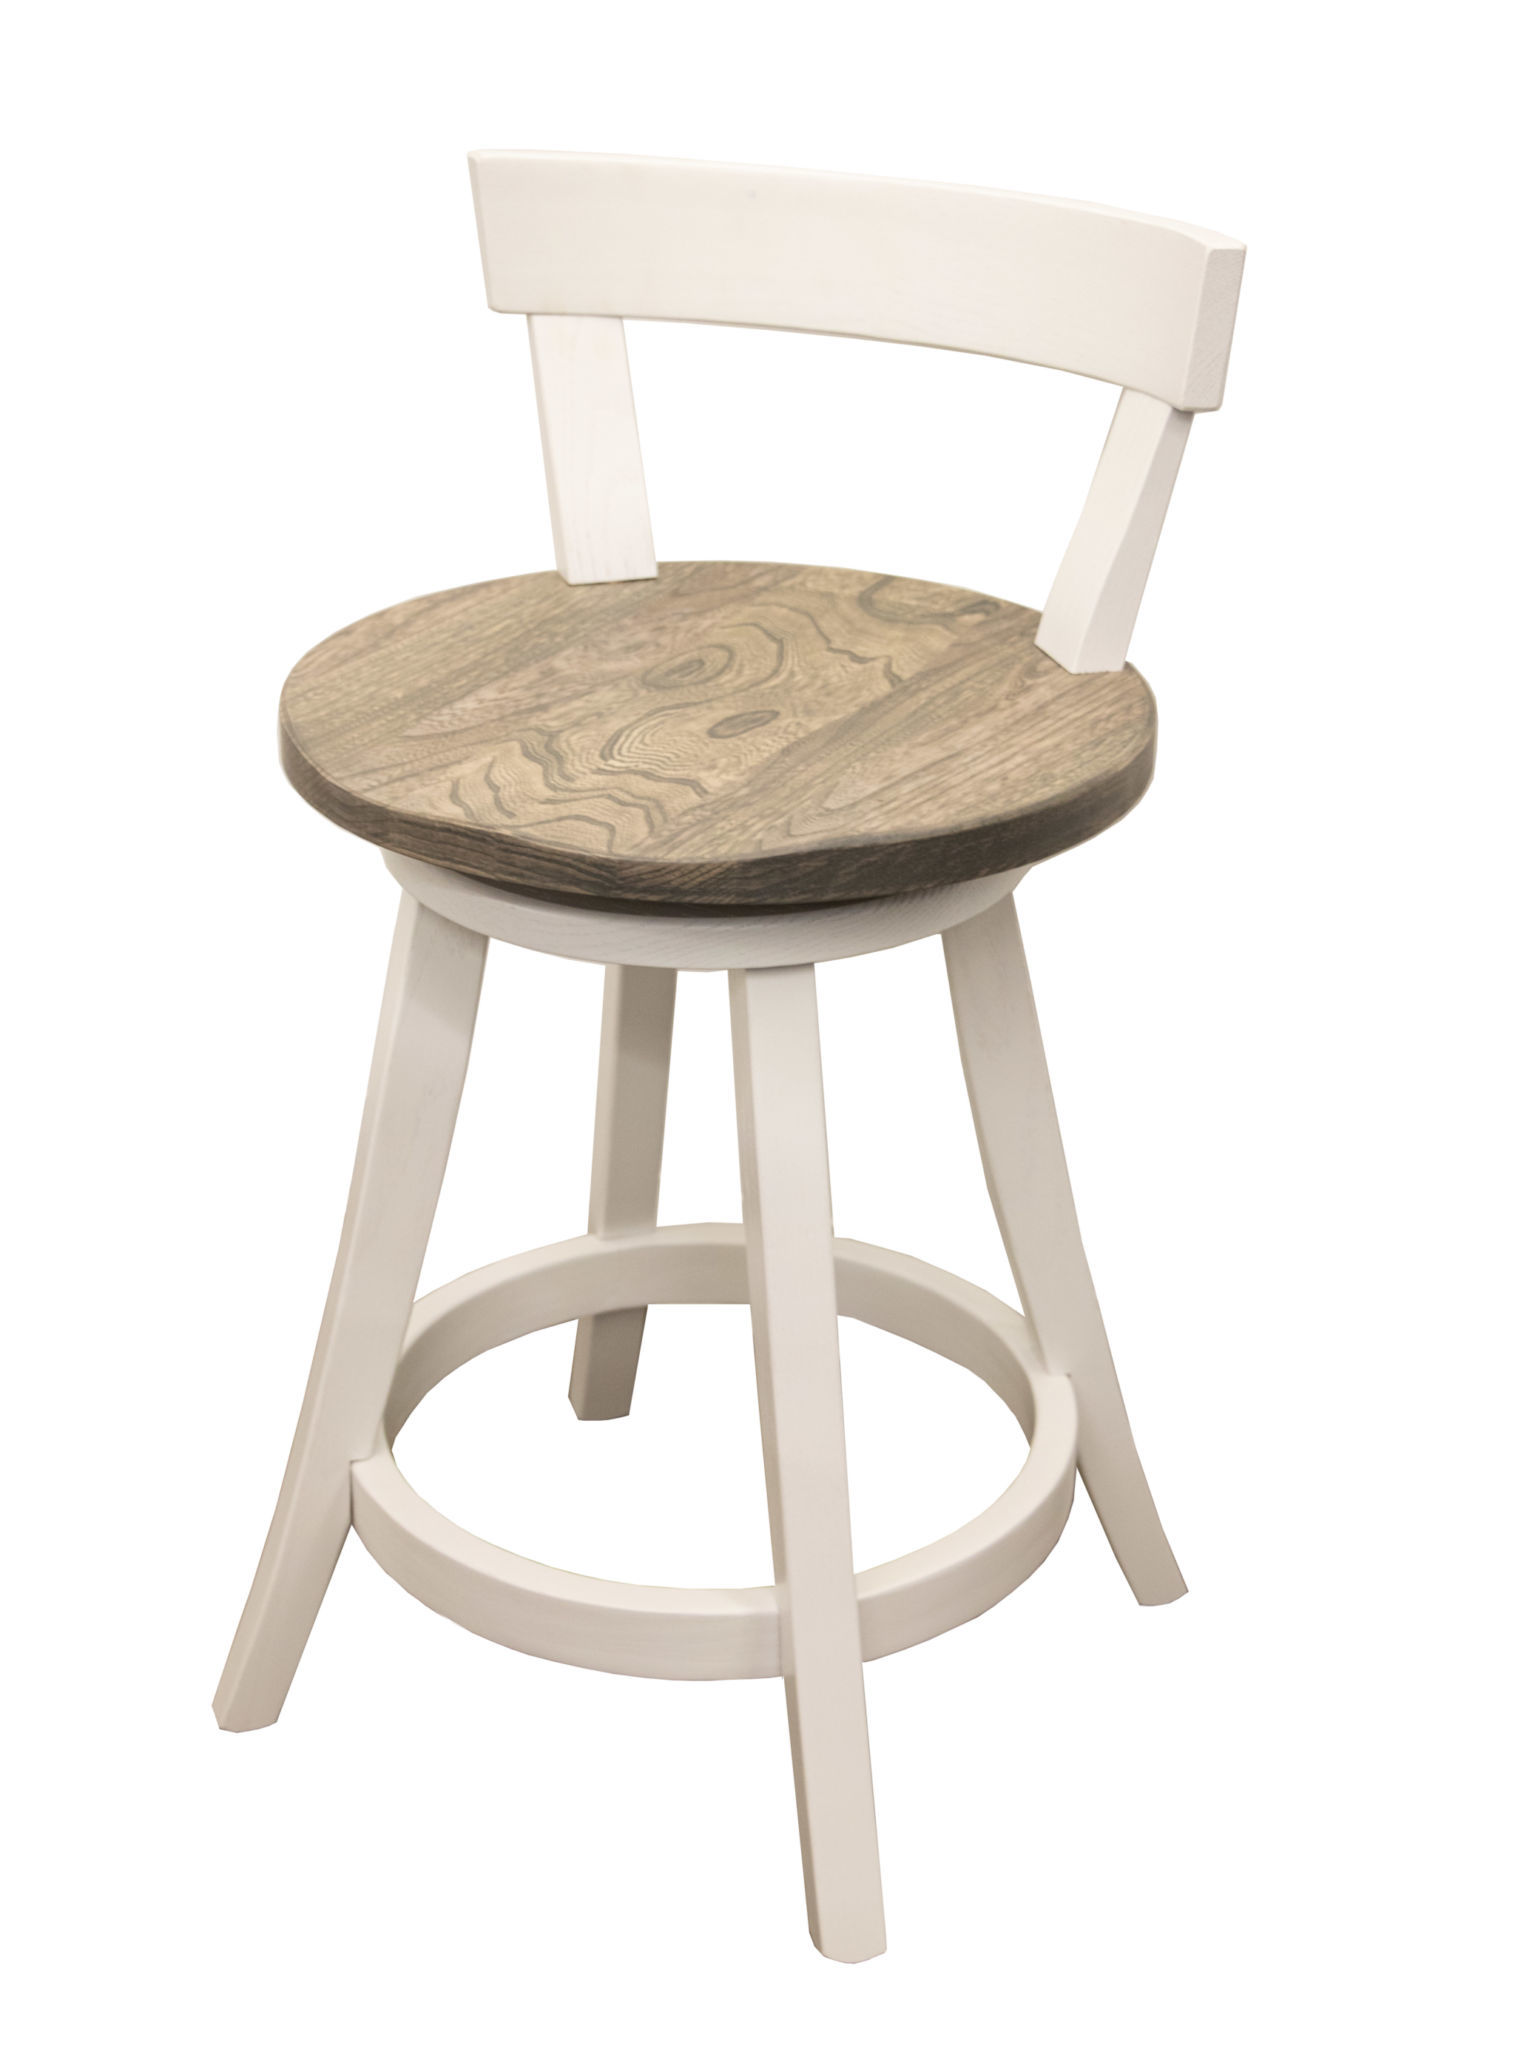 24 Turnstone Swivel Bar Stool With Back Dutch Craft Furniture